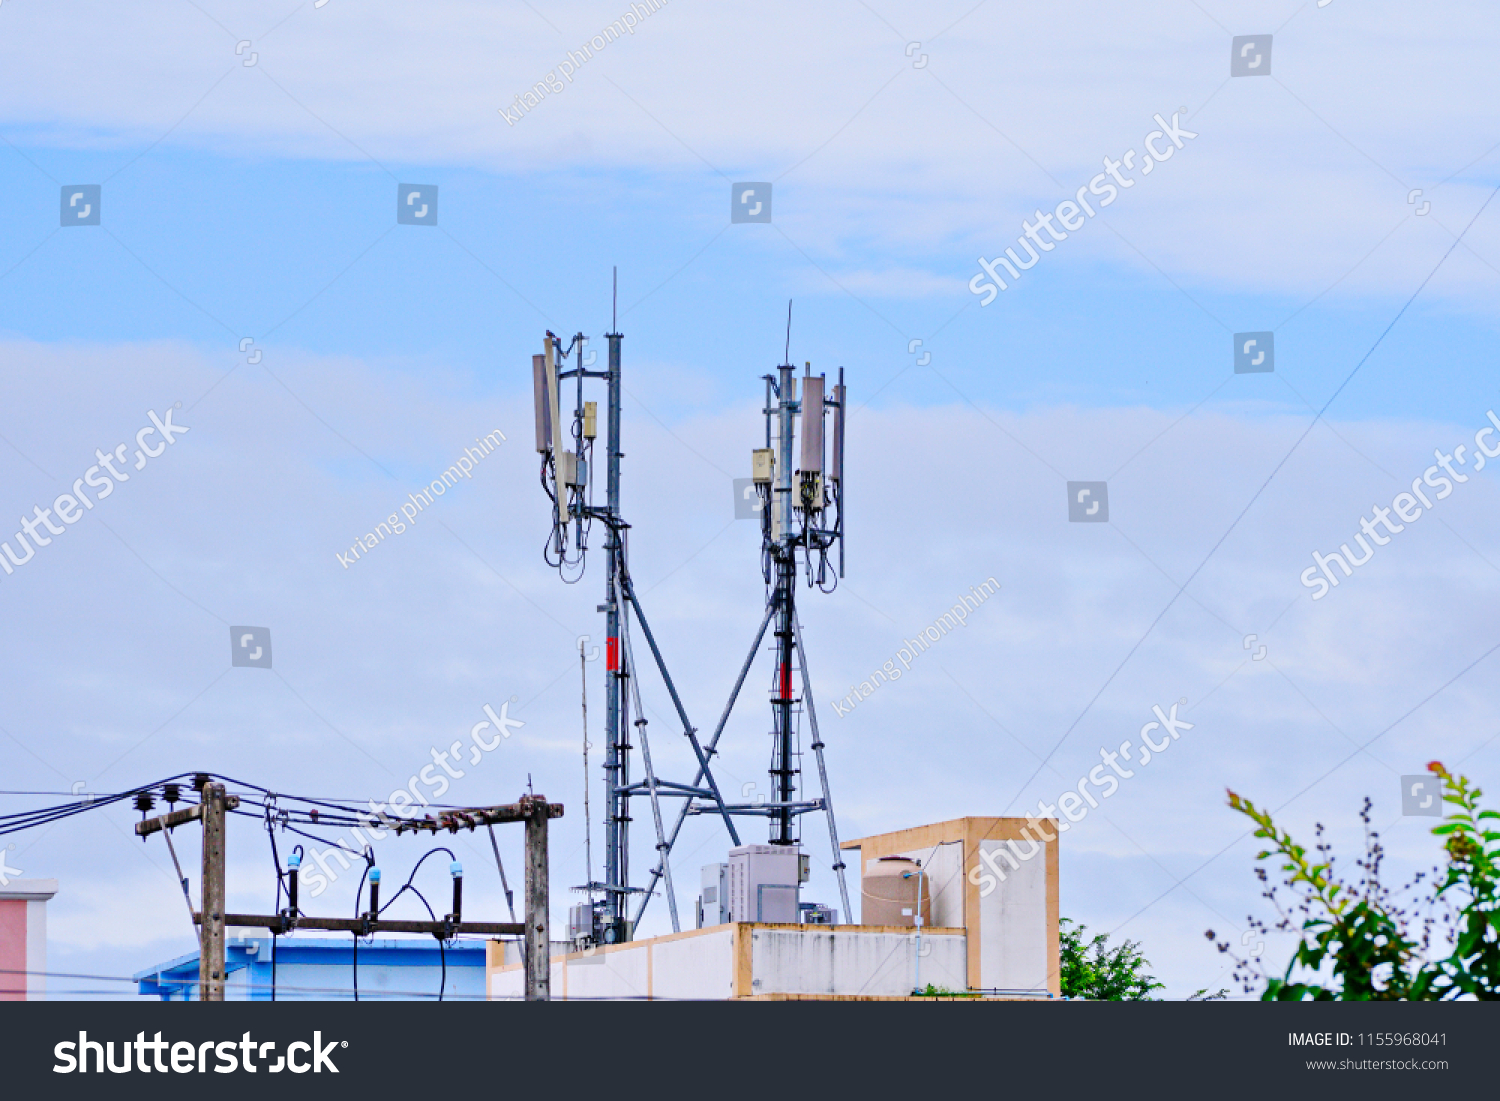 hight resolution of 3g 4g and 5g cell site telecommunication tower radio tower or mobile phone